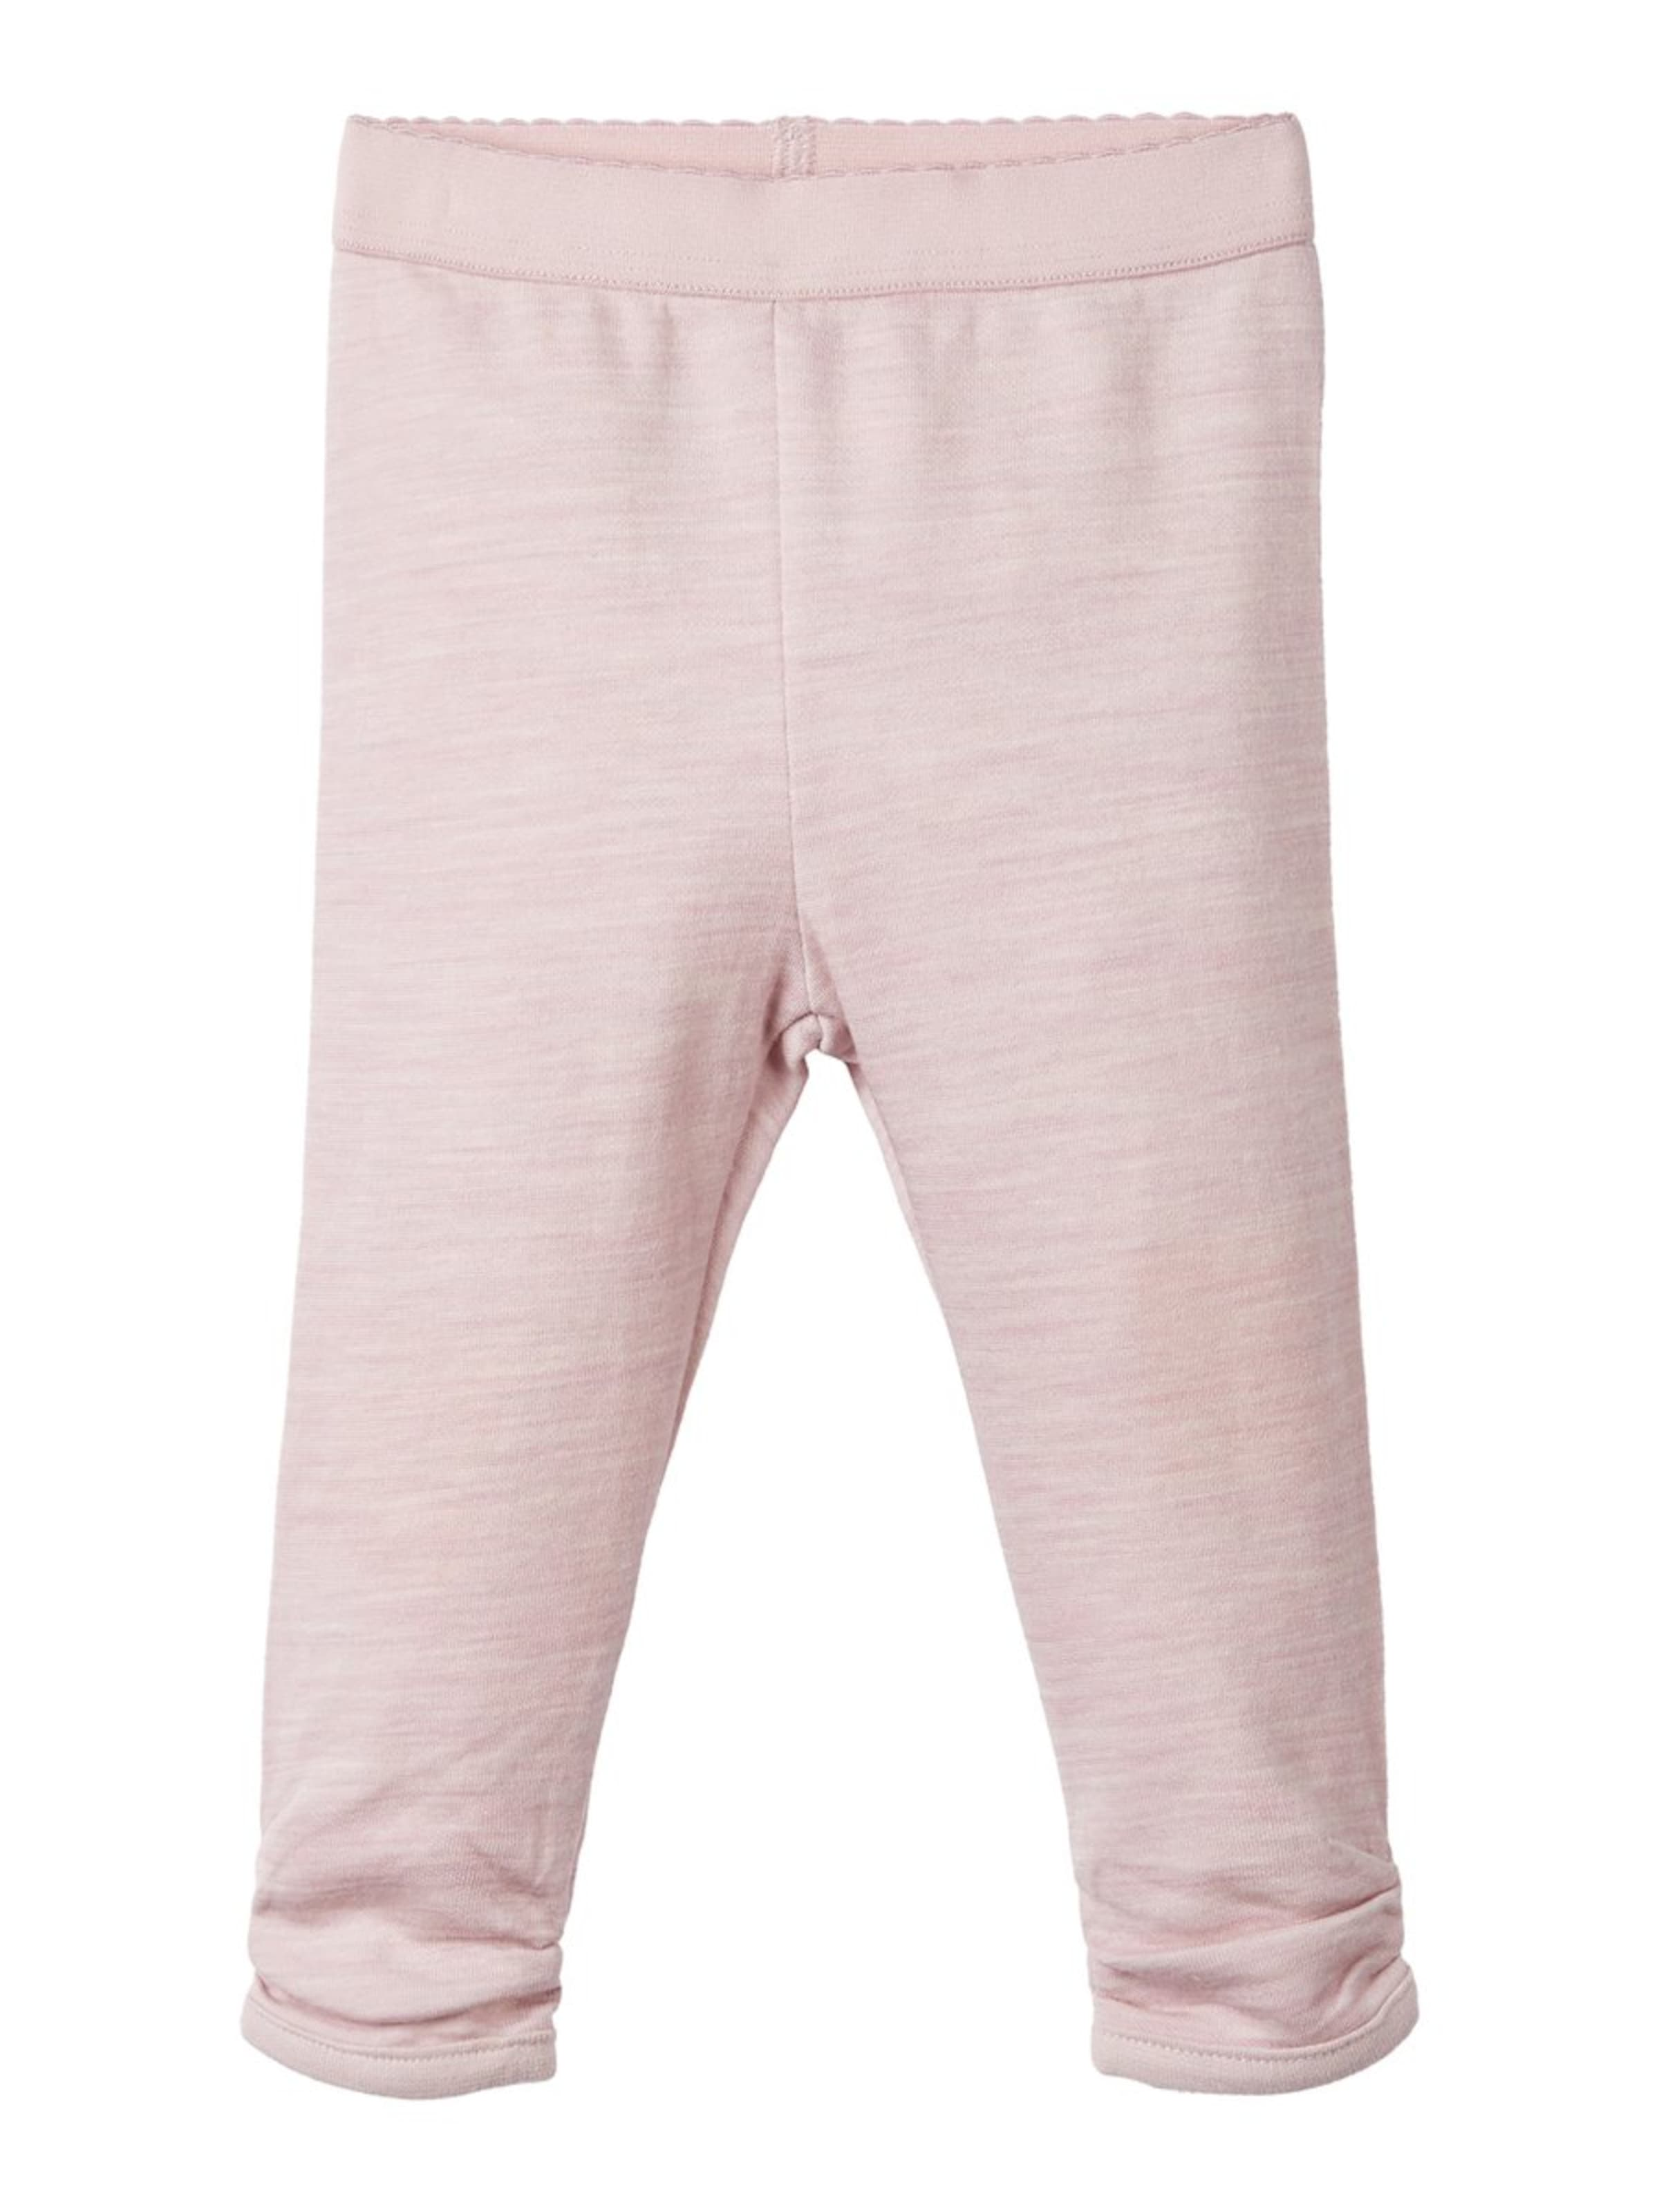 Kinder,  Mädchen,  Kinder NAME IT Leggings khaki, rosa | 05713755739303